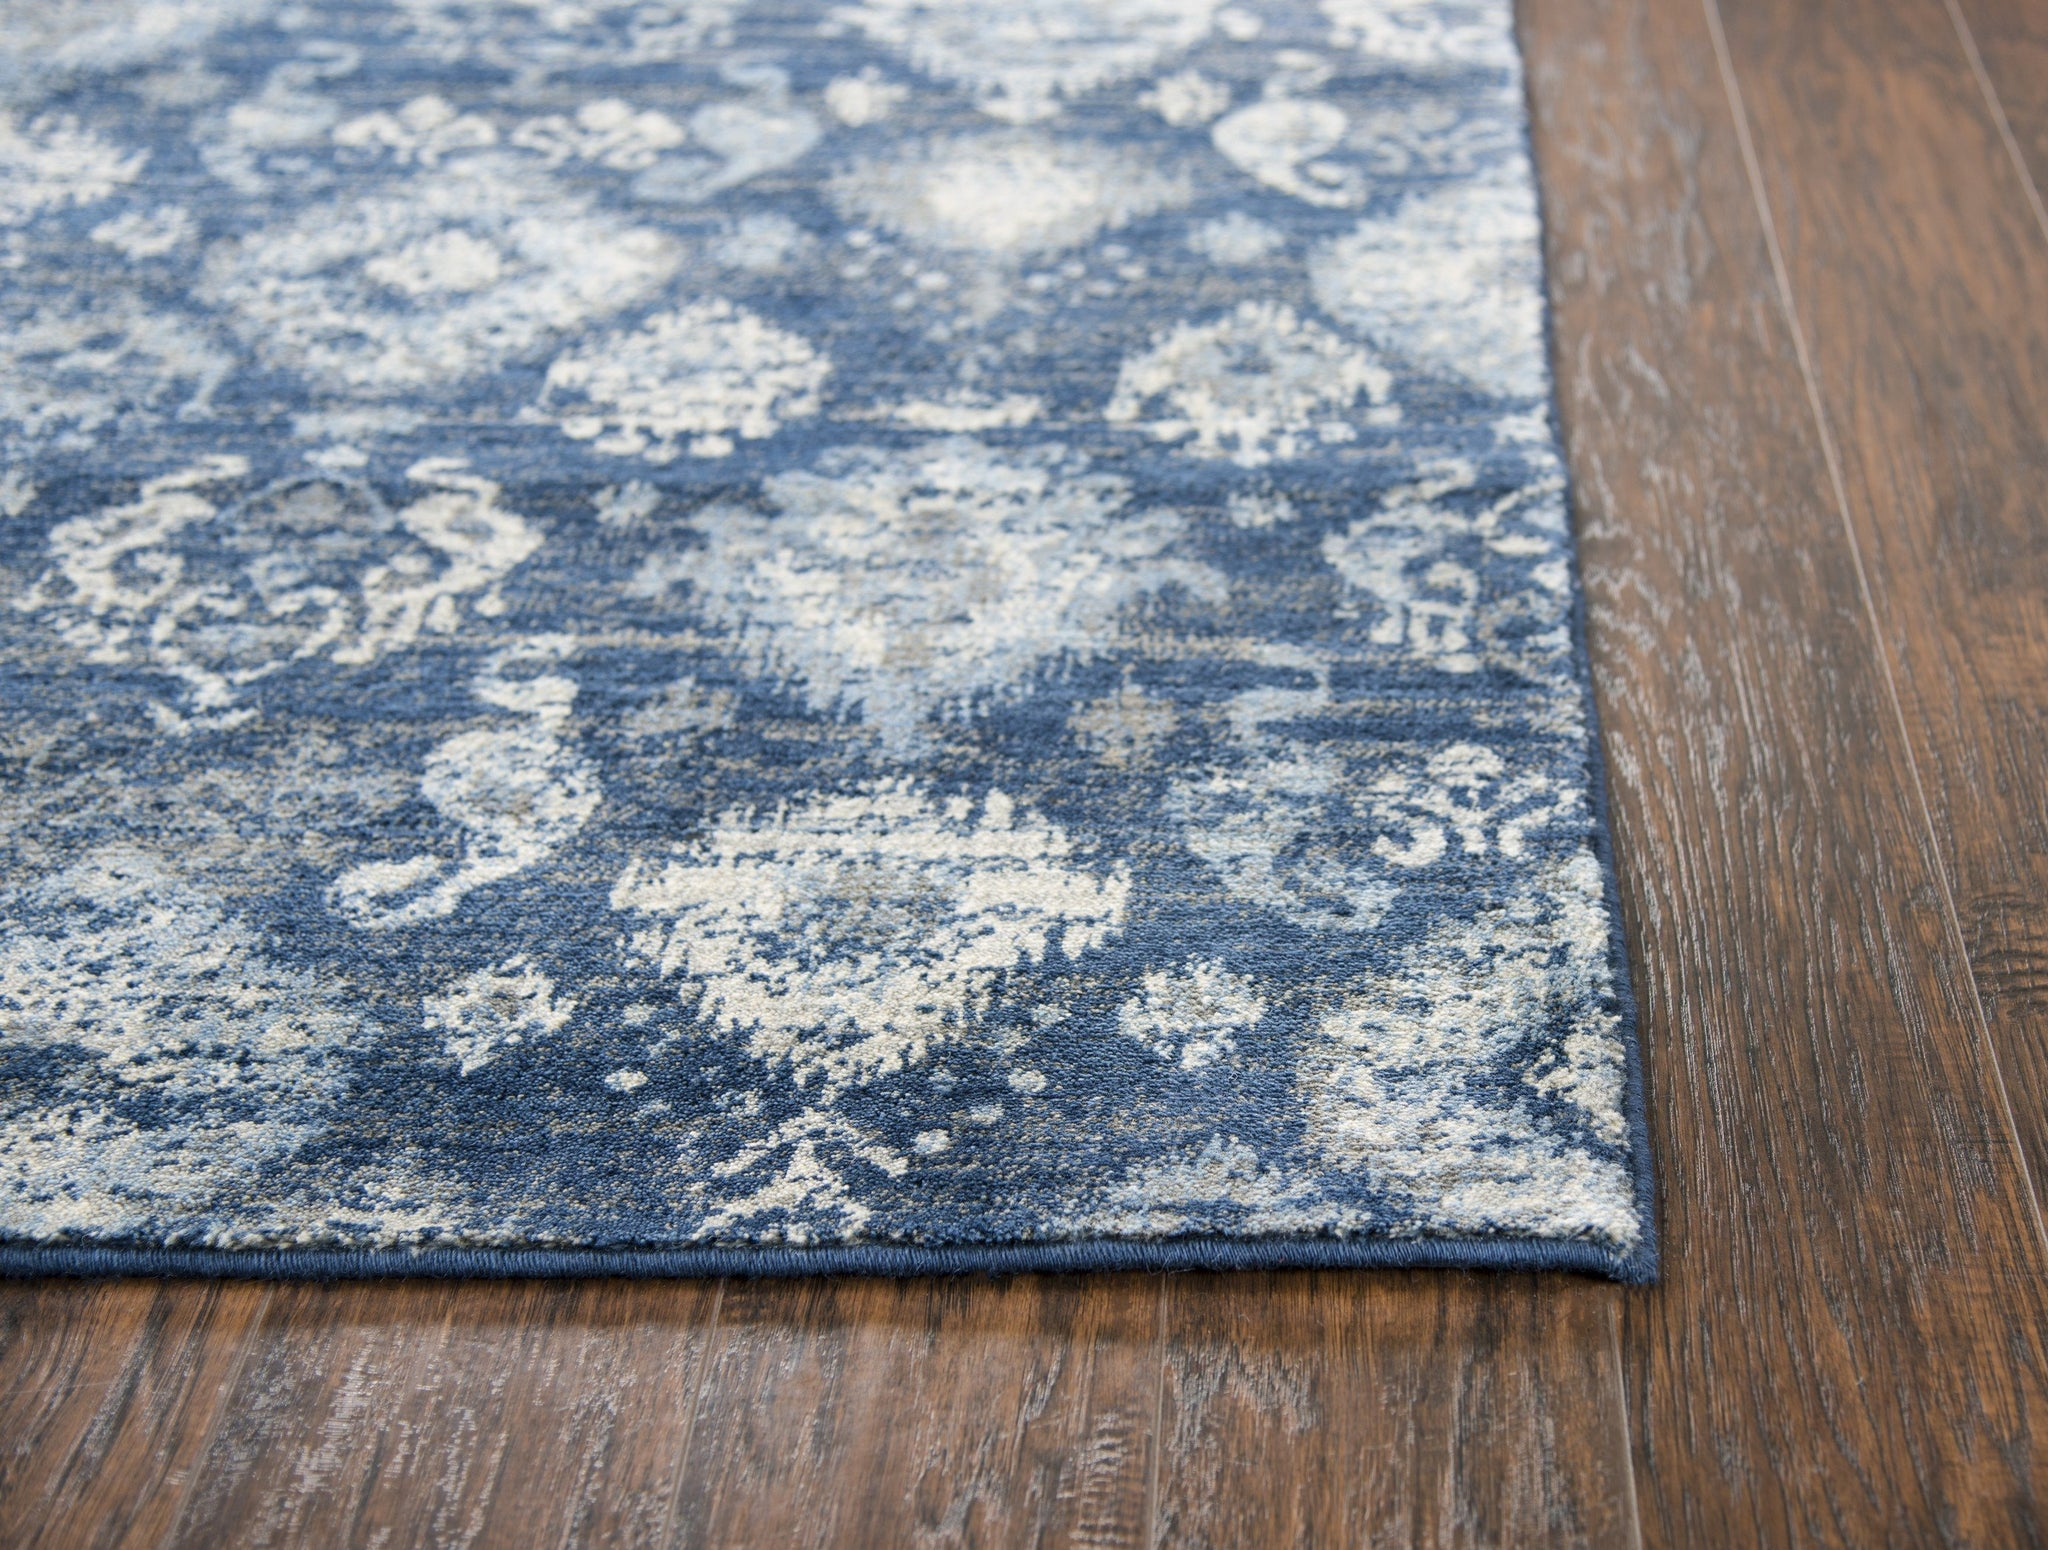 Gossamer Area Rugs By RizzyHome GS6827 Blue100% Wool From India Corner Shot